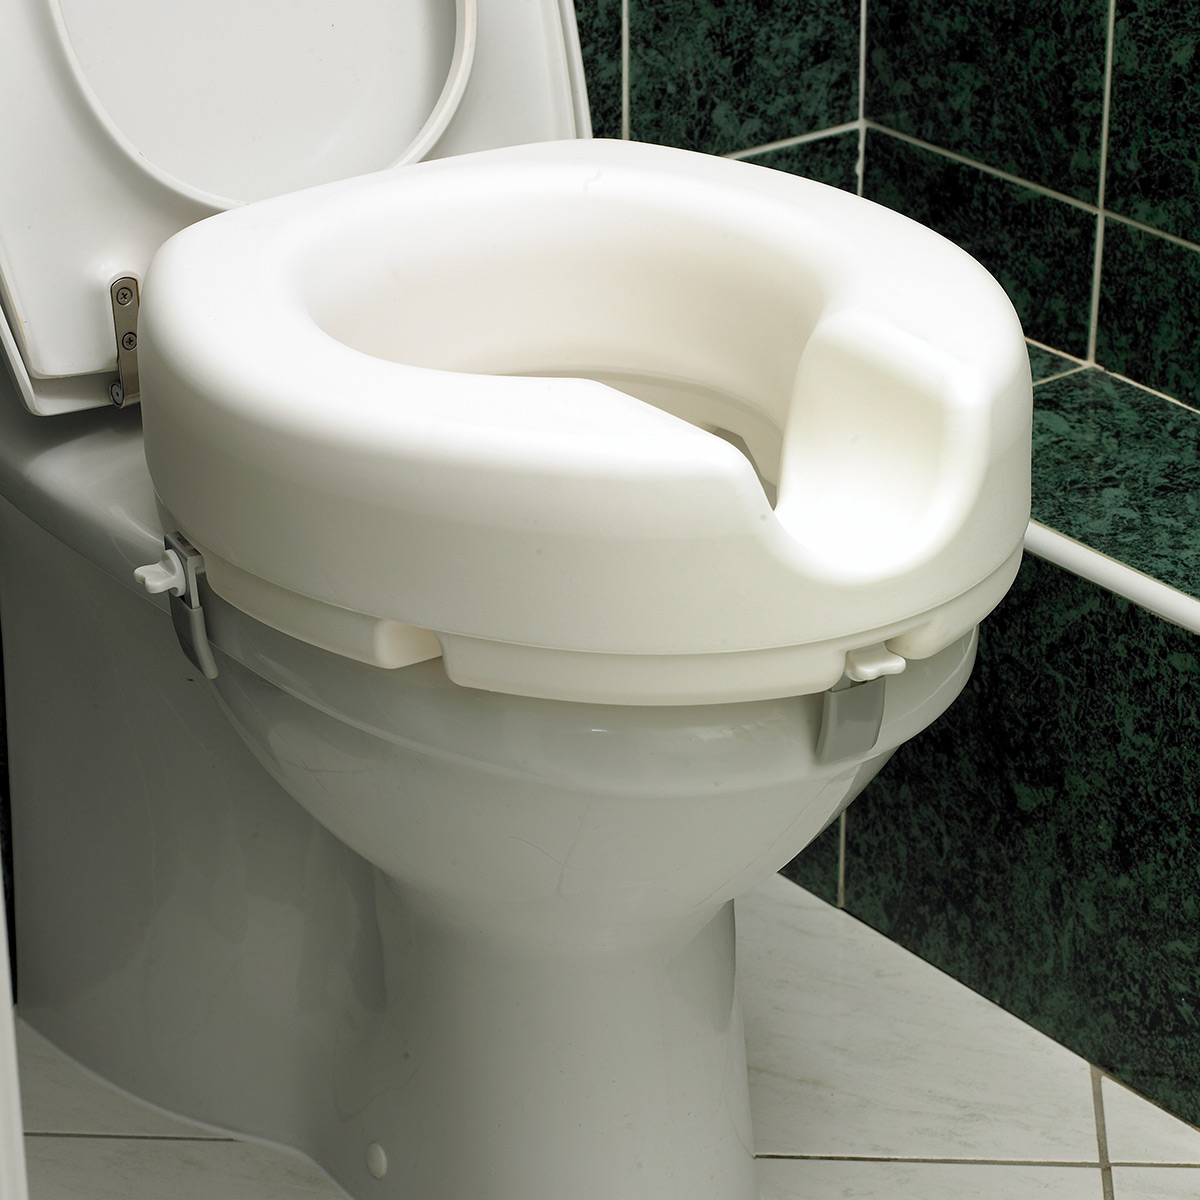 Raised Toilet Seat 5 Elevated Toileting Mobility Disability Elderly Care Aid